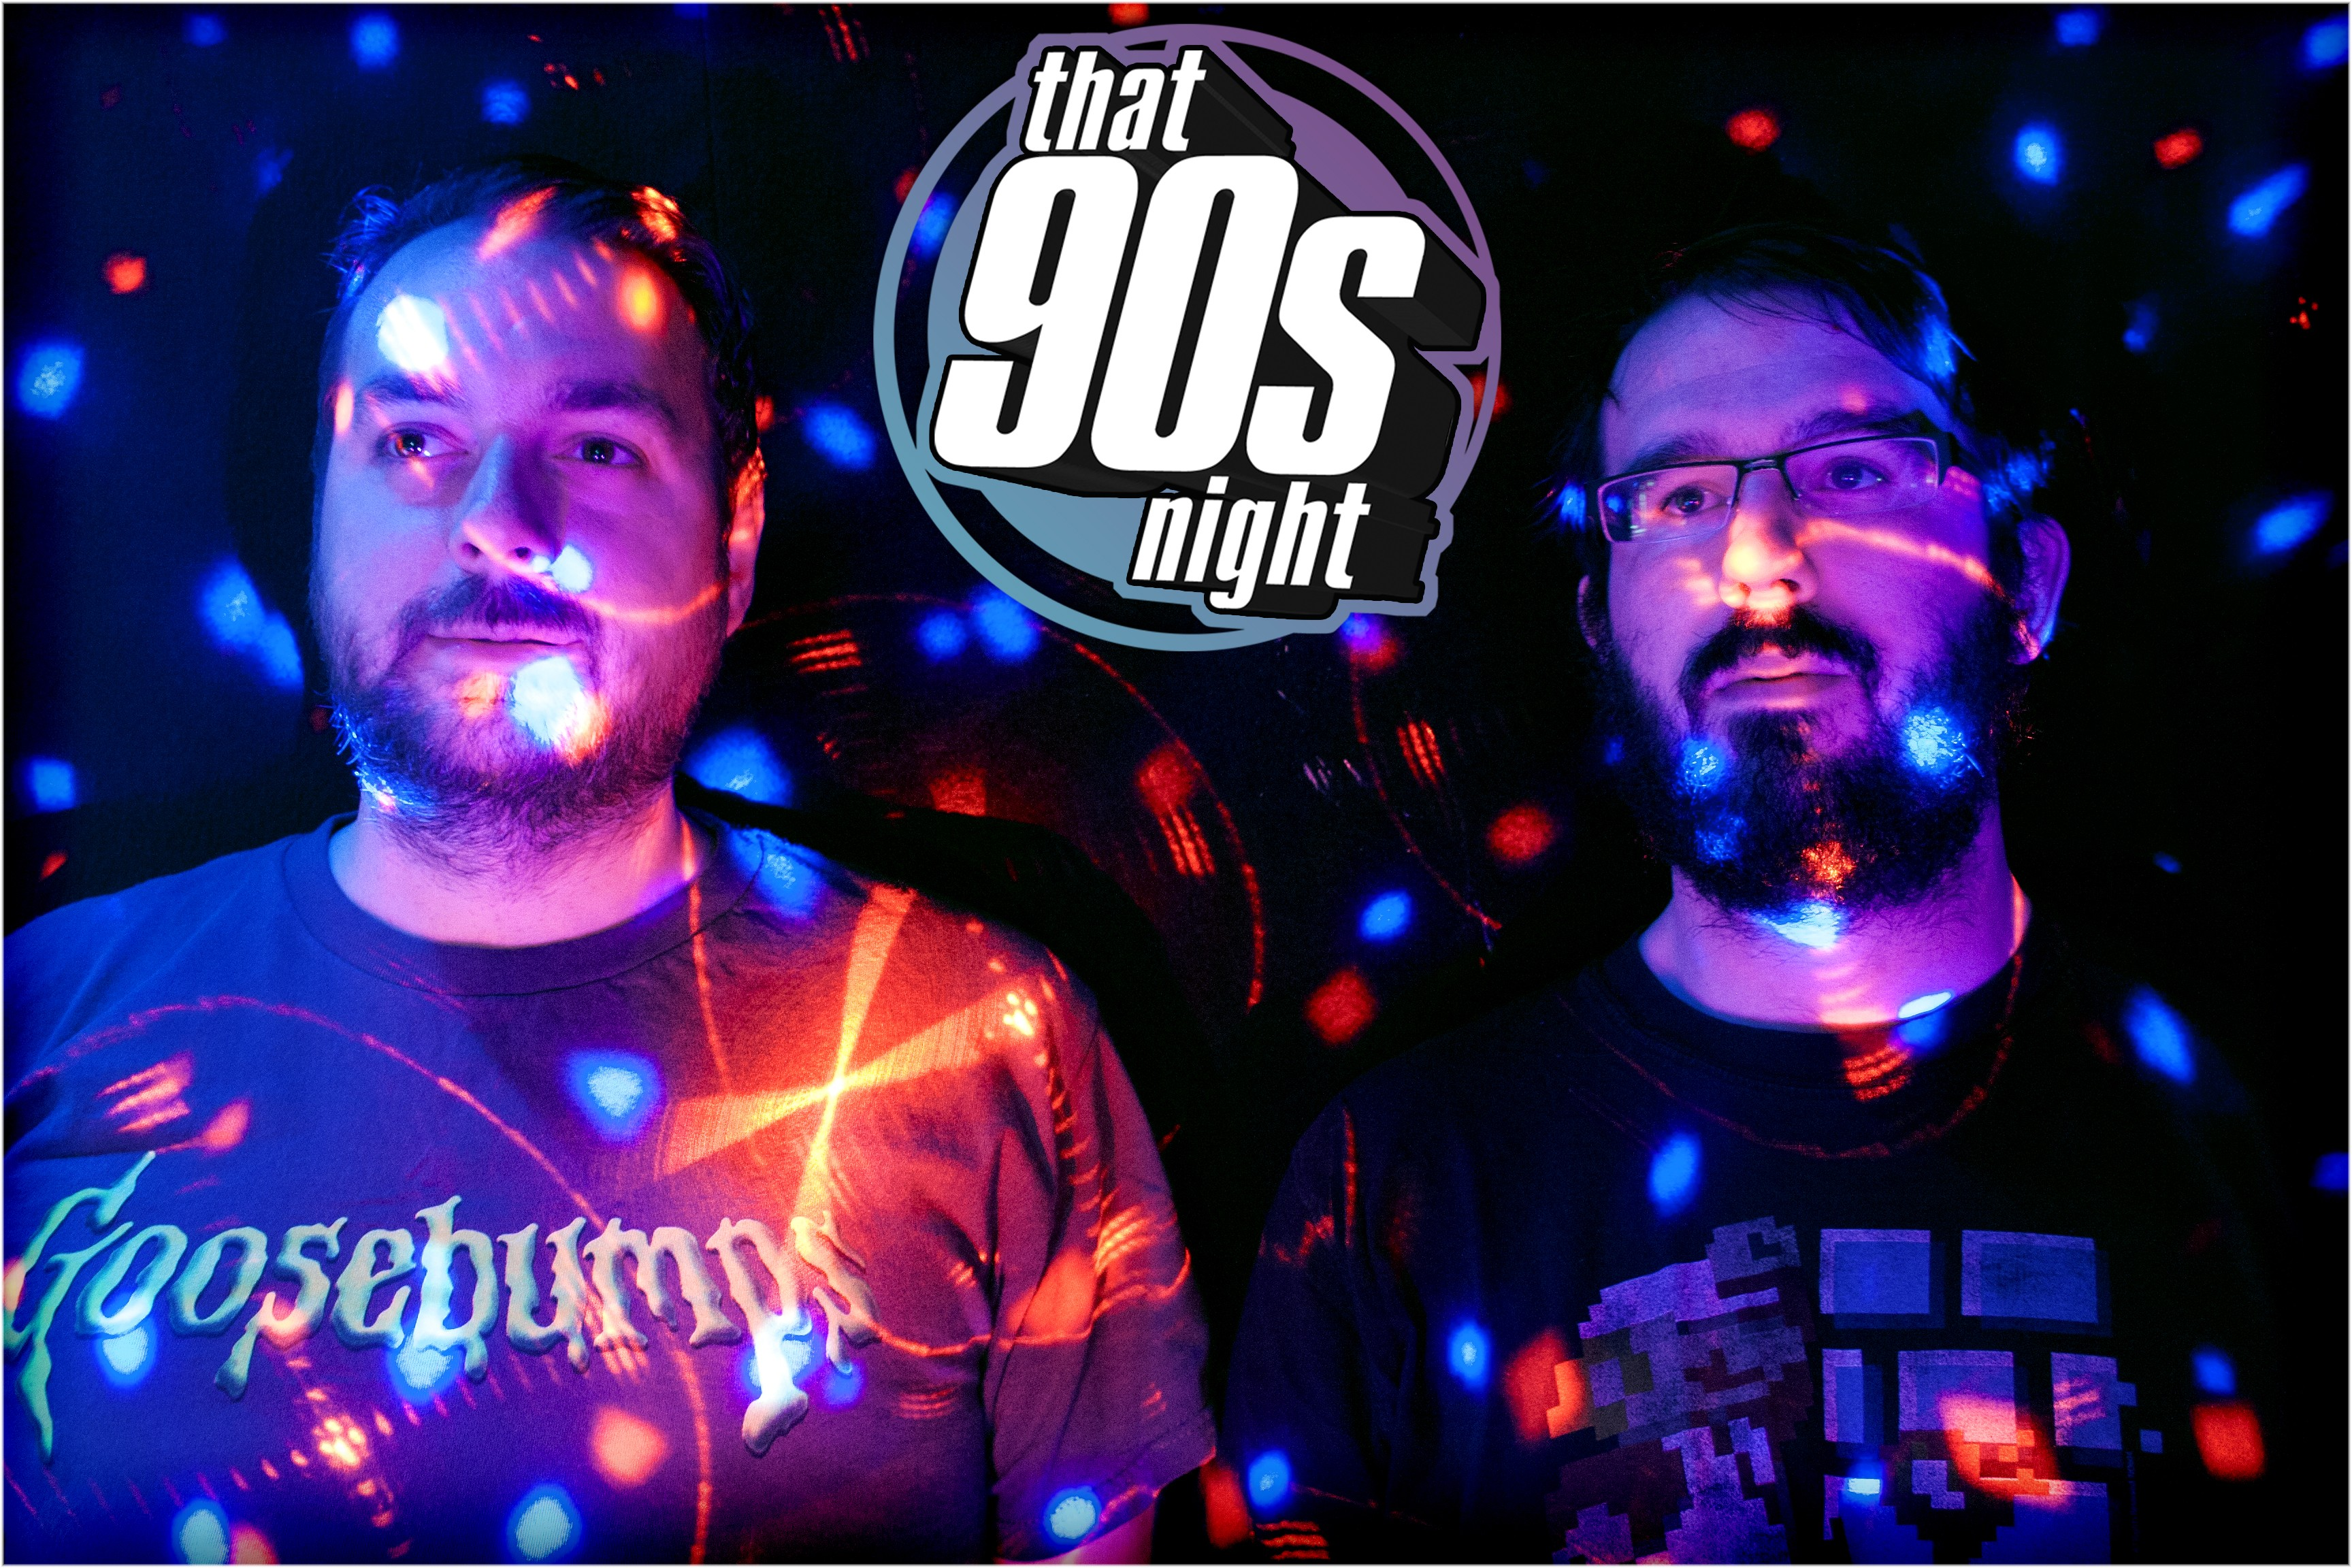 A 90s Quiz with That 90s Night   The Scene